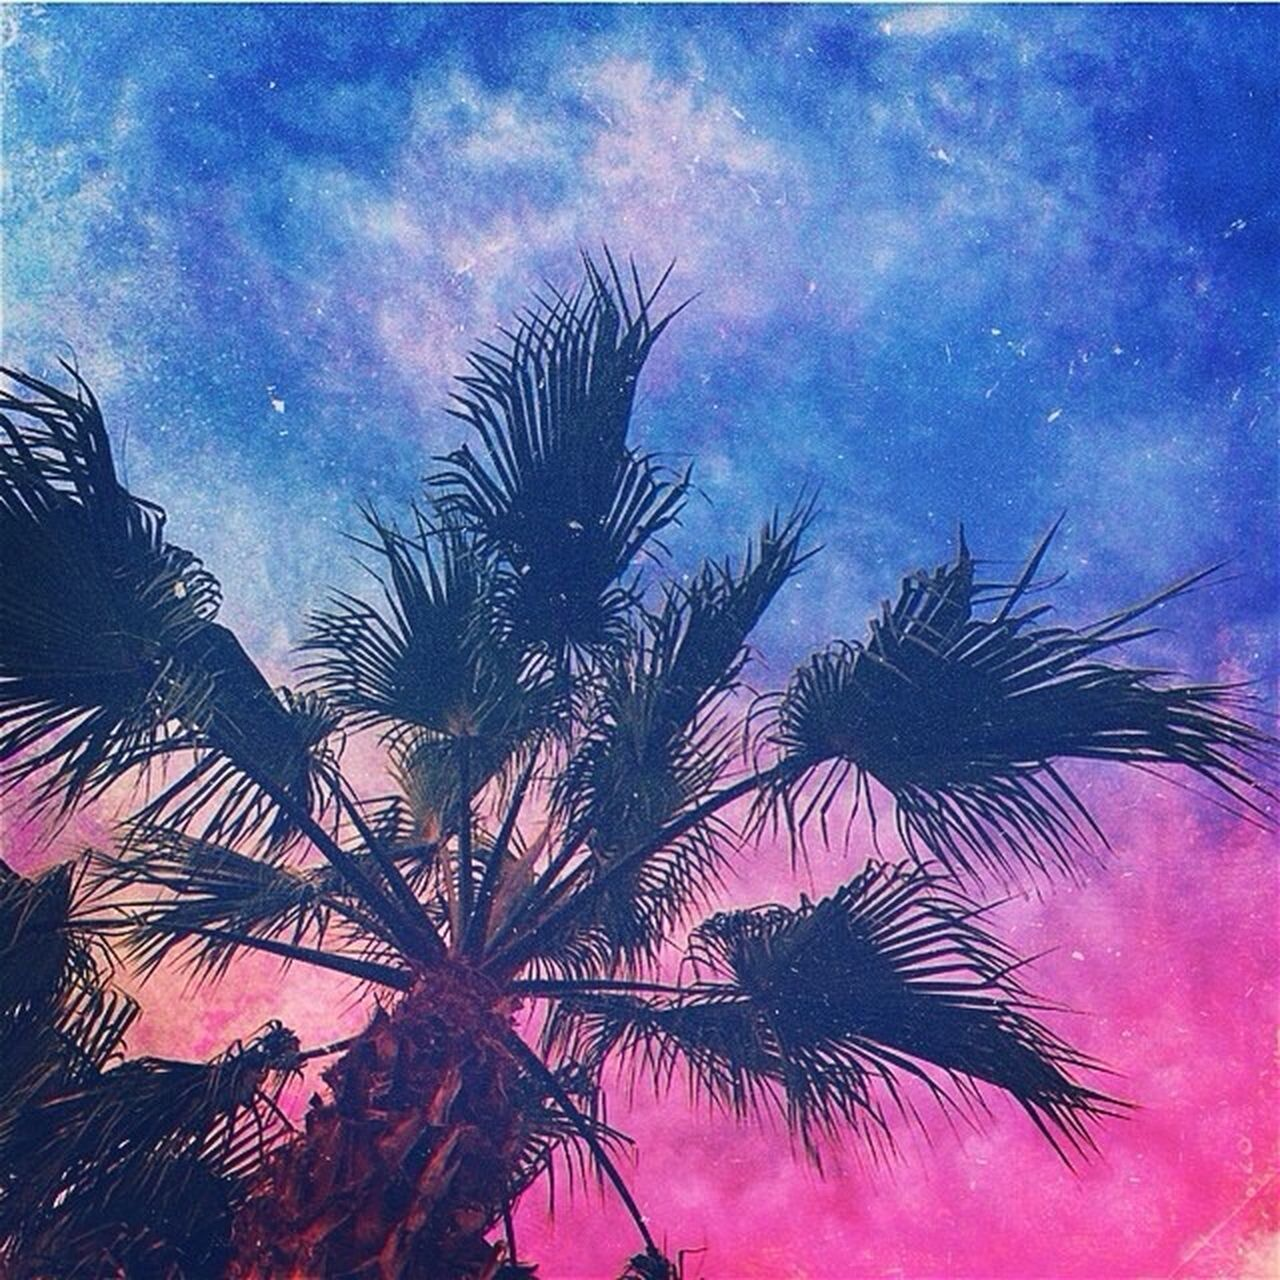 palm tree, no people, night, sky, tree, low angle view, nature, outdoors, beauty in nature, space, close-up